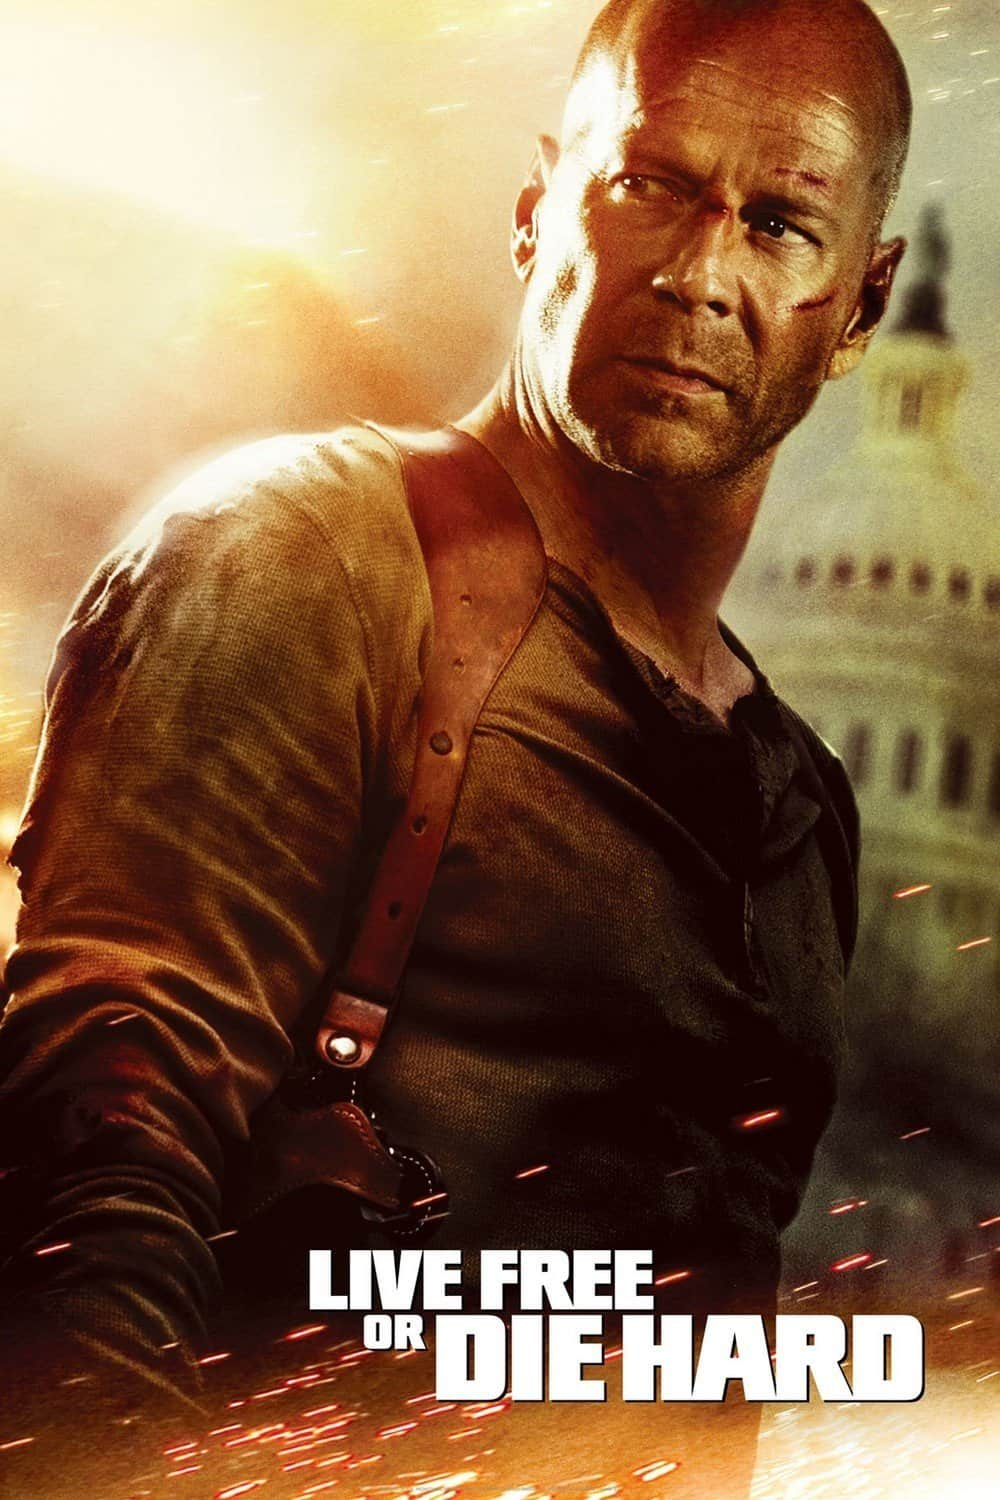 Live Free or Die Hard, 2007